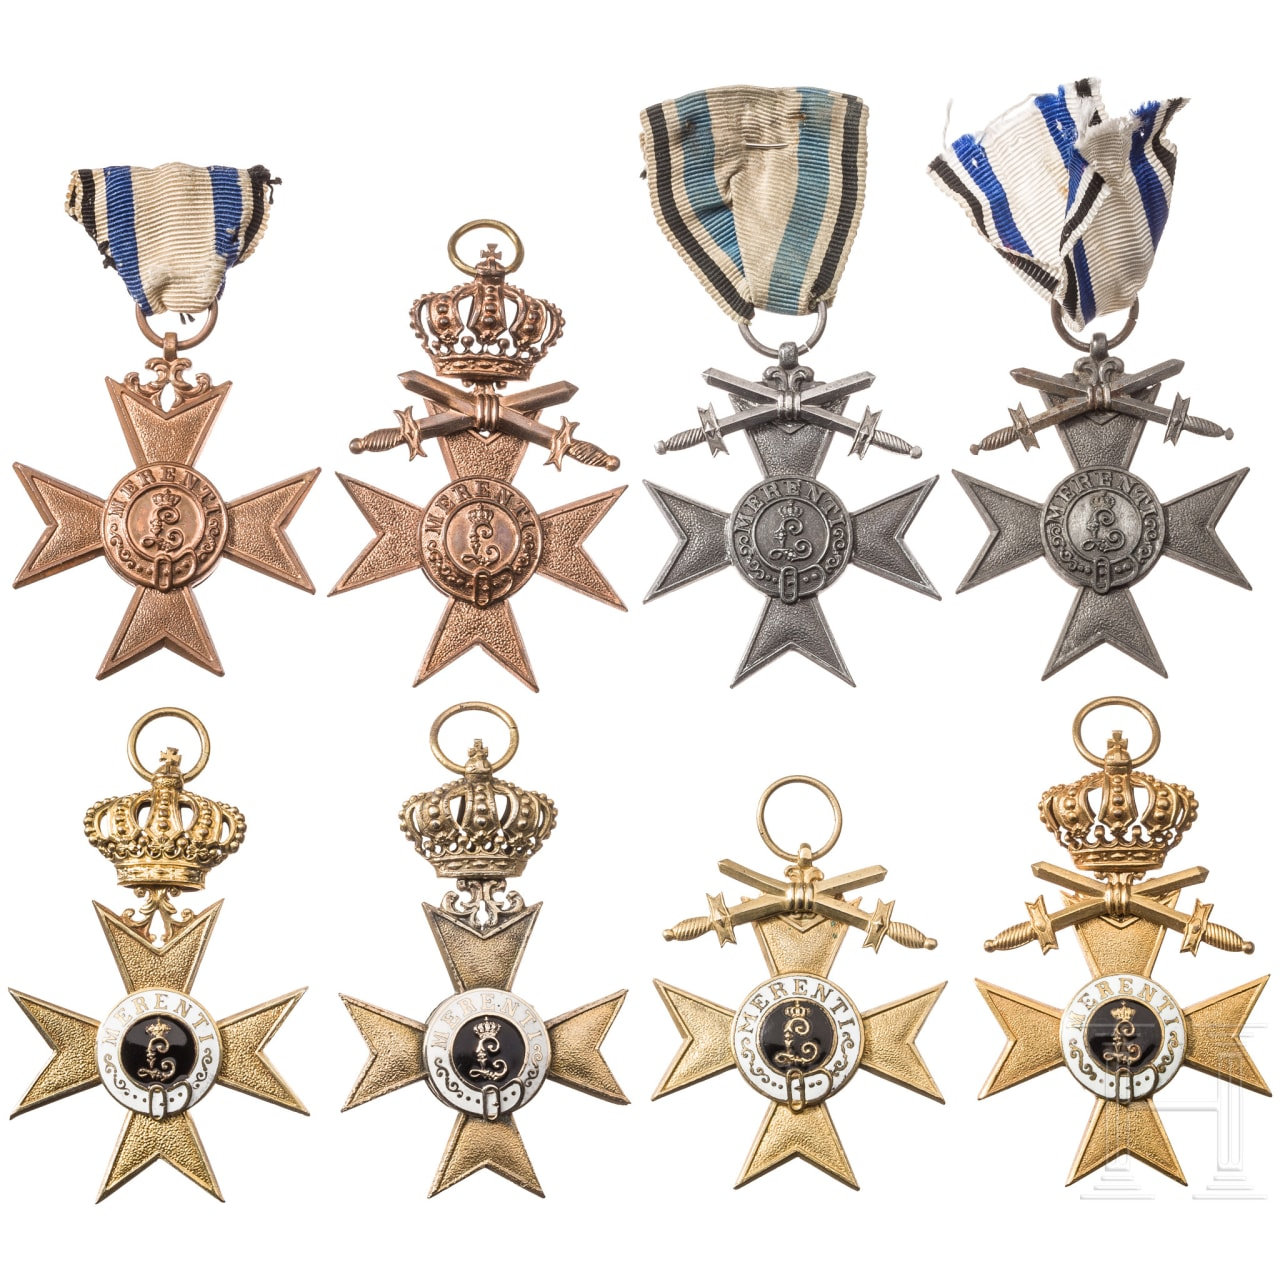 Eight 1st and 3rd Class Military Merit Crosses